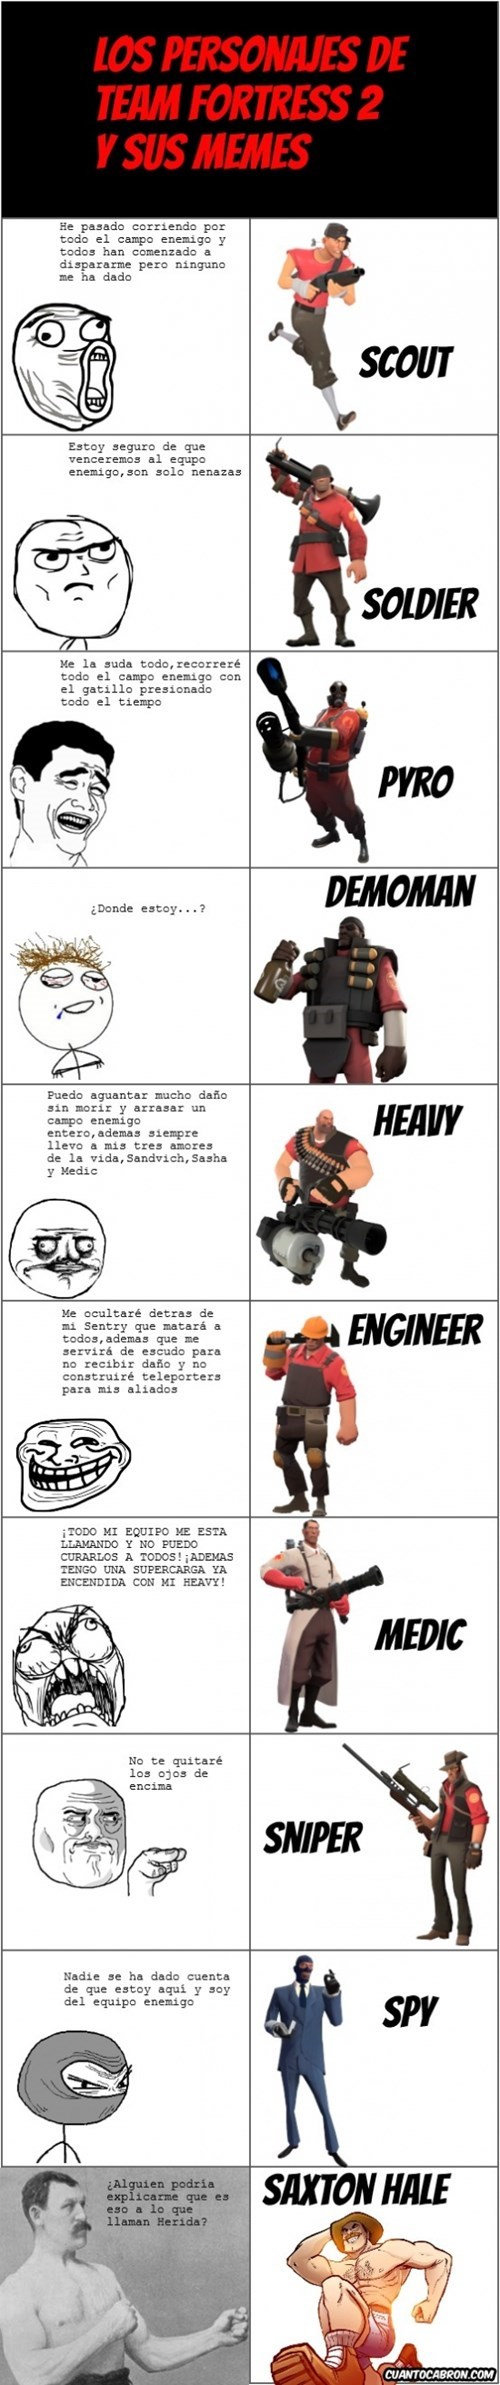 Team Fortress 2 meme